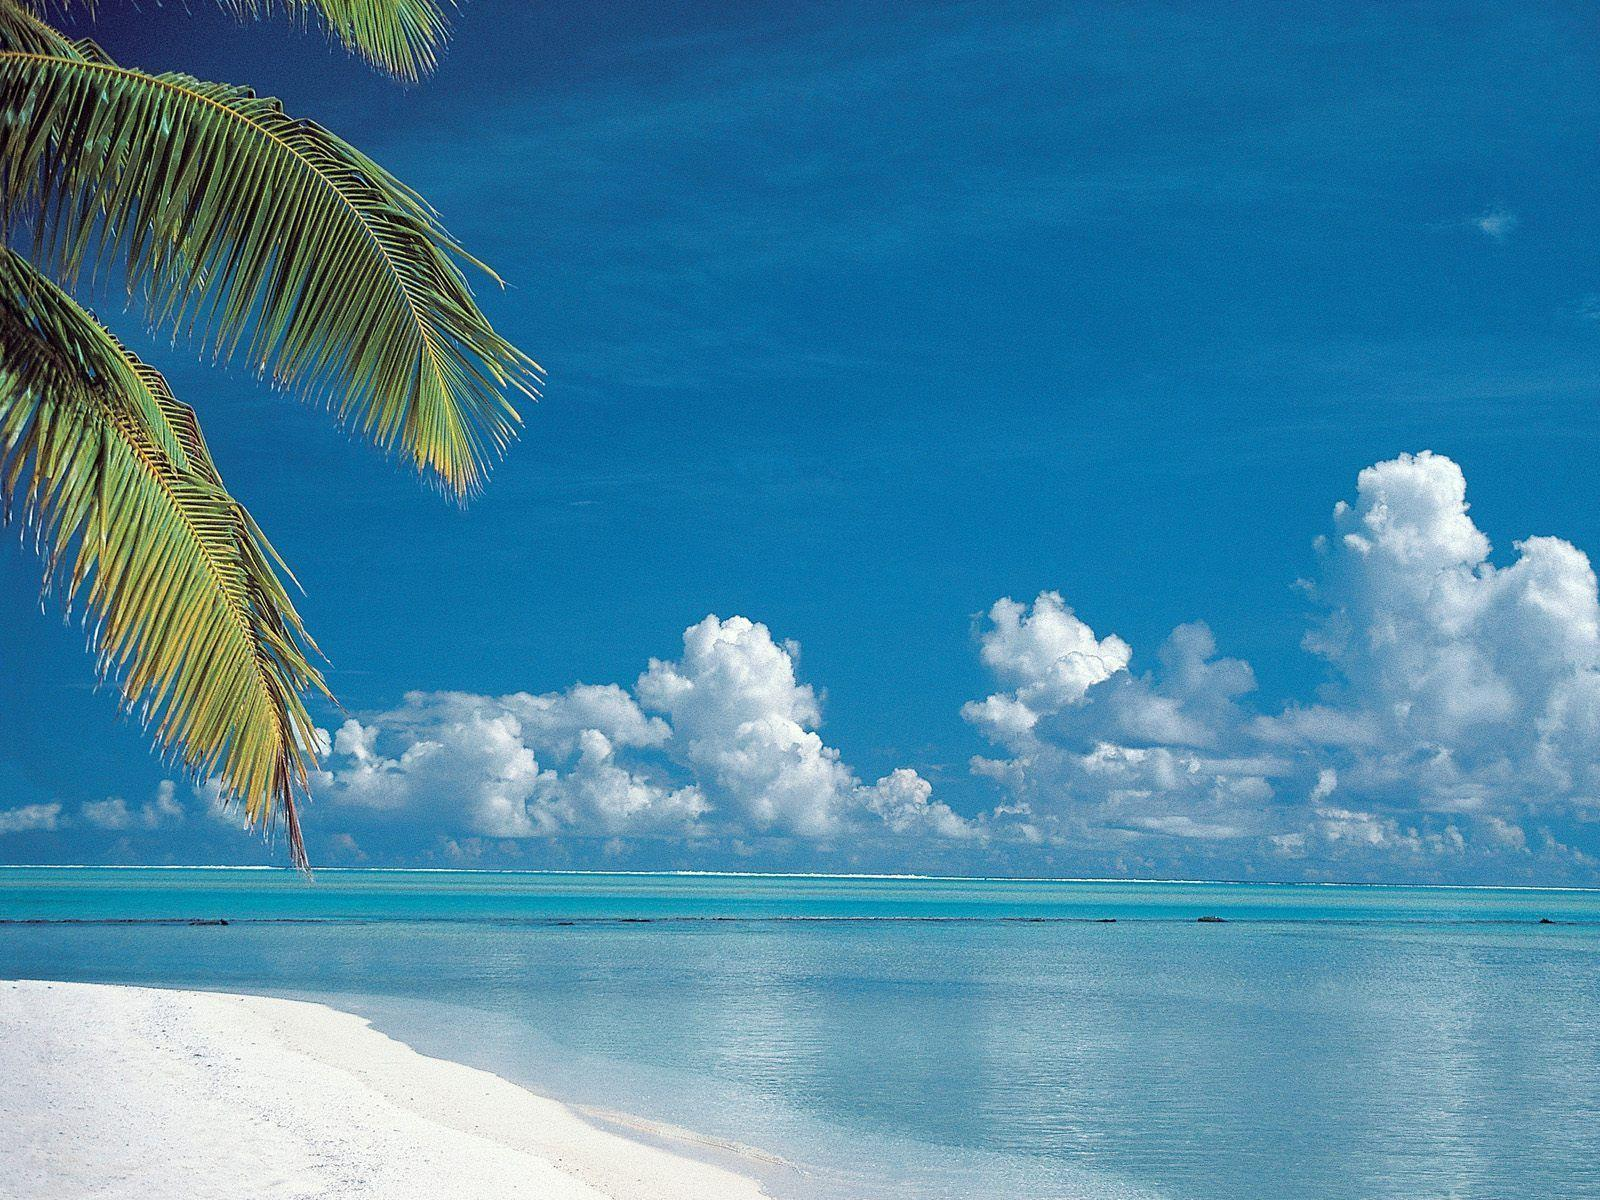 Tropical Beach Aitutaki Cook Islands Desktop Wallpaper